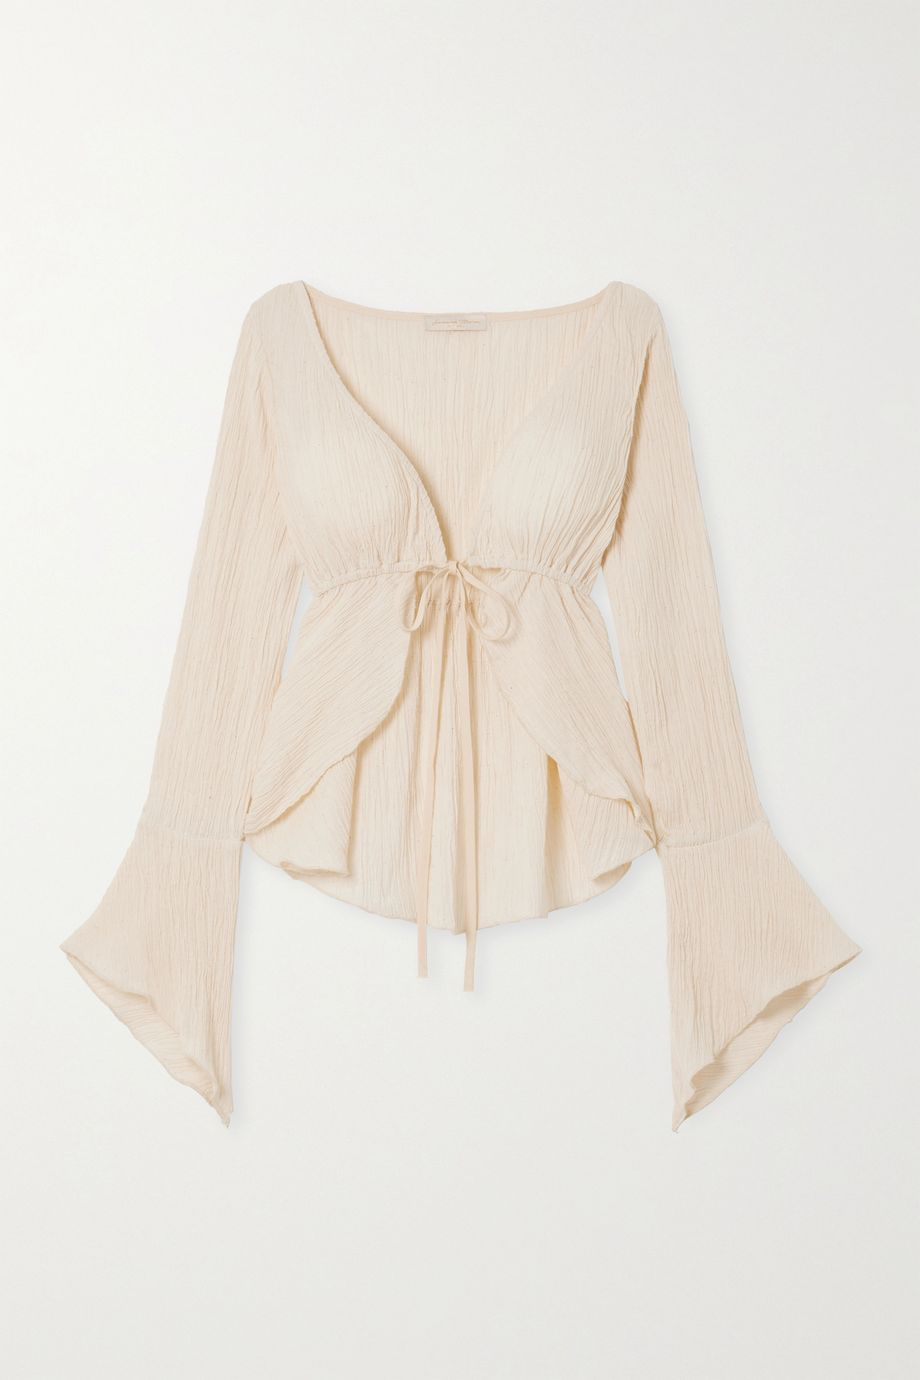 Savannah Morrow The Label The Flow tie-front crinkled organic cotton-gauze top